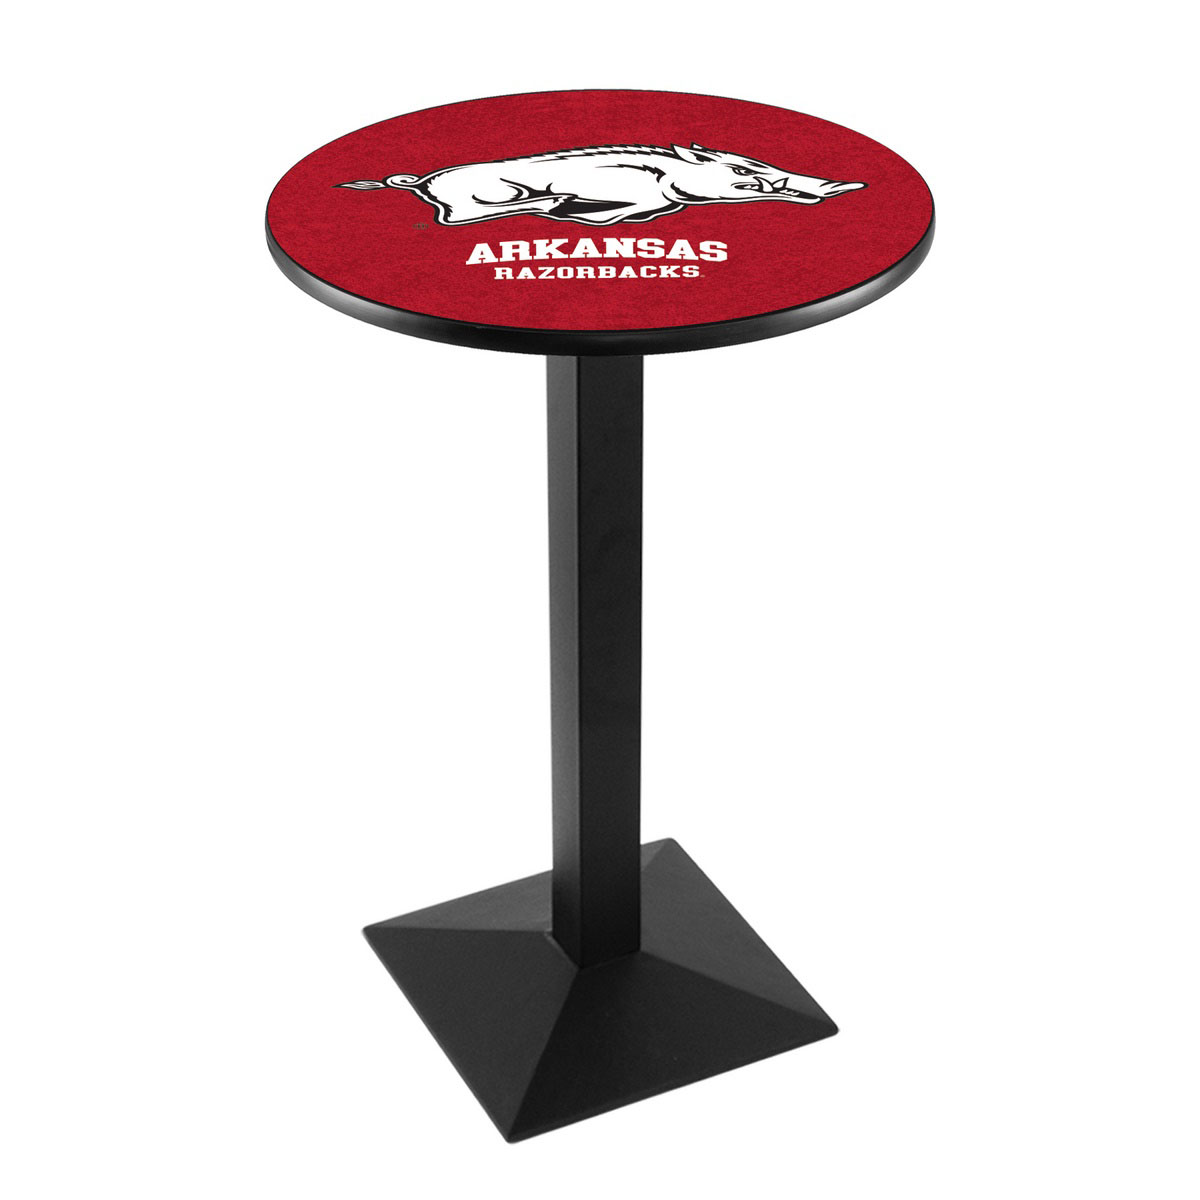 Best-selling University Arkansas Logo Pub Bar Table Square Stand Product Photo